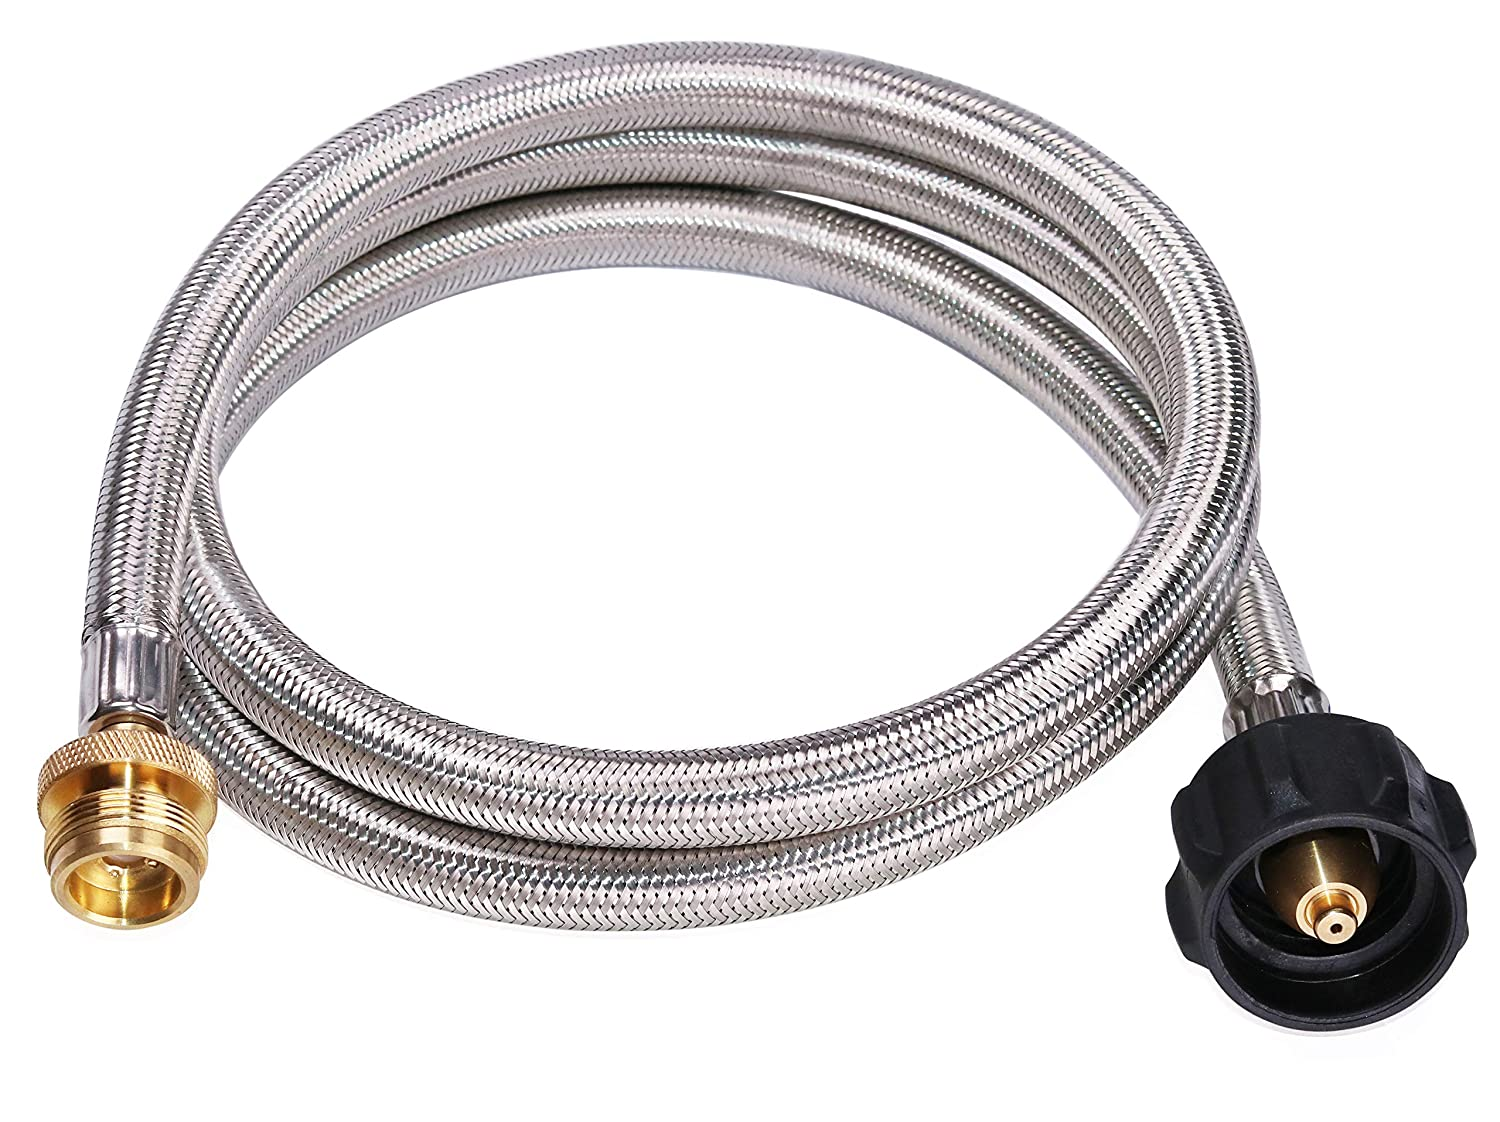 DOZYANT 5 Feet Stainless Steel Braided Propane Adapter Hose 1 lb to 20 lb Converter Replacement for QCC1/Type1 Tank Connects 1 LB Bulk Portable Appliance to 20 lb Propane Tank - Safety Certified